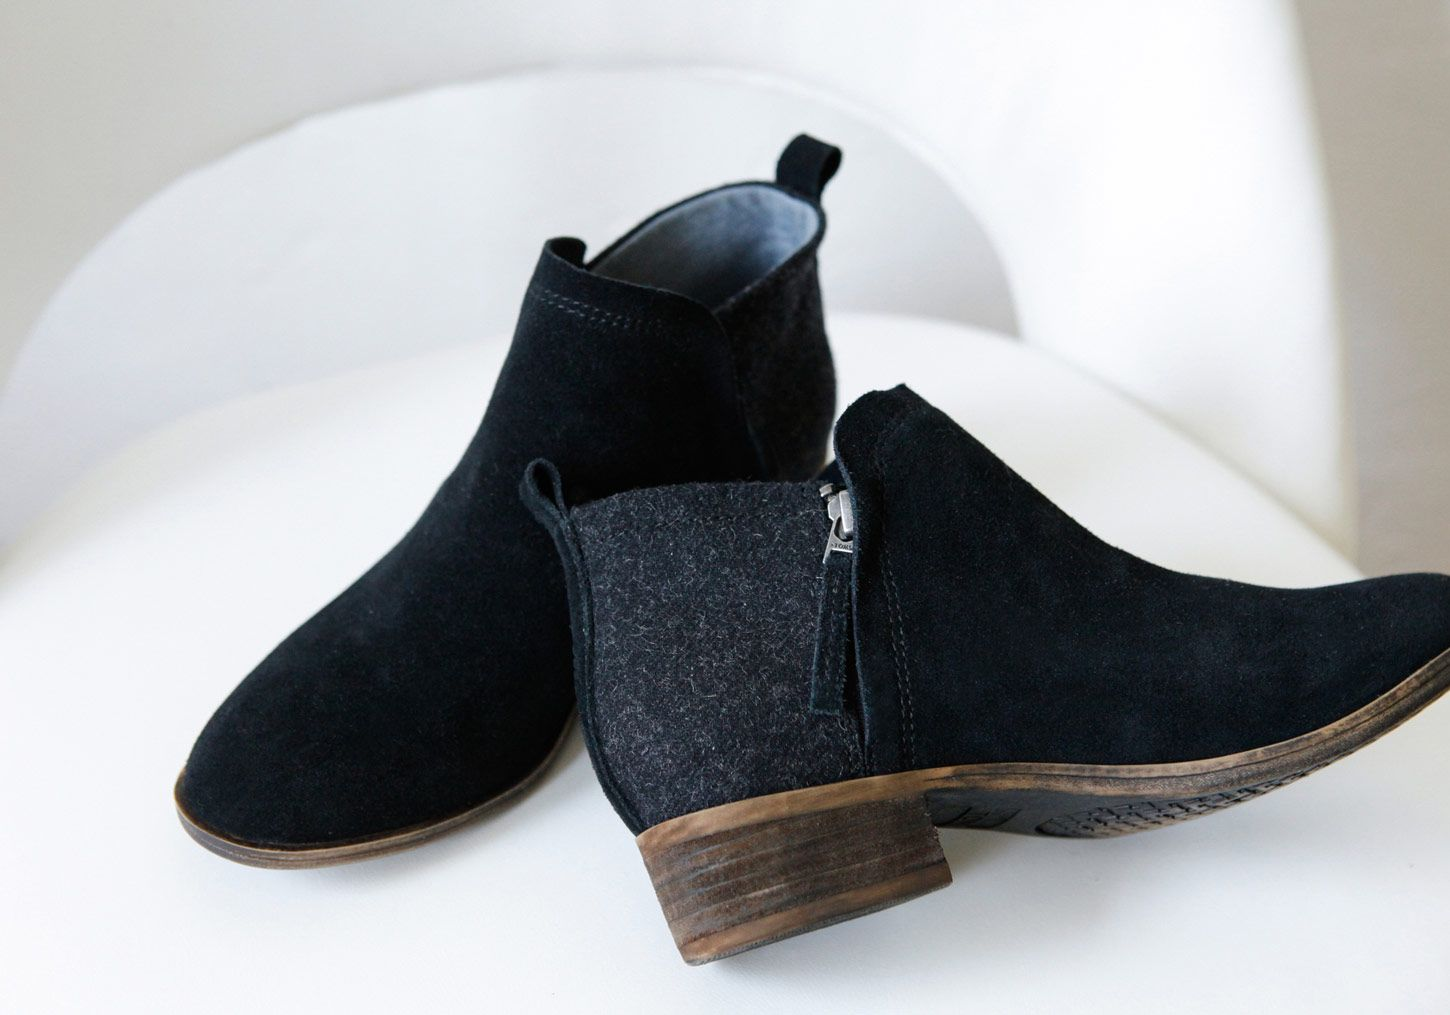 043b0e2042d With a short heel and a blend of suede and wool